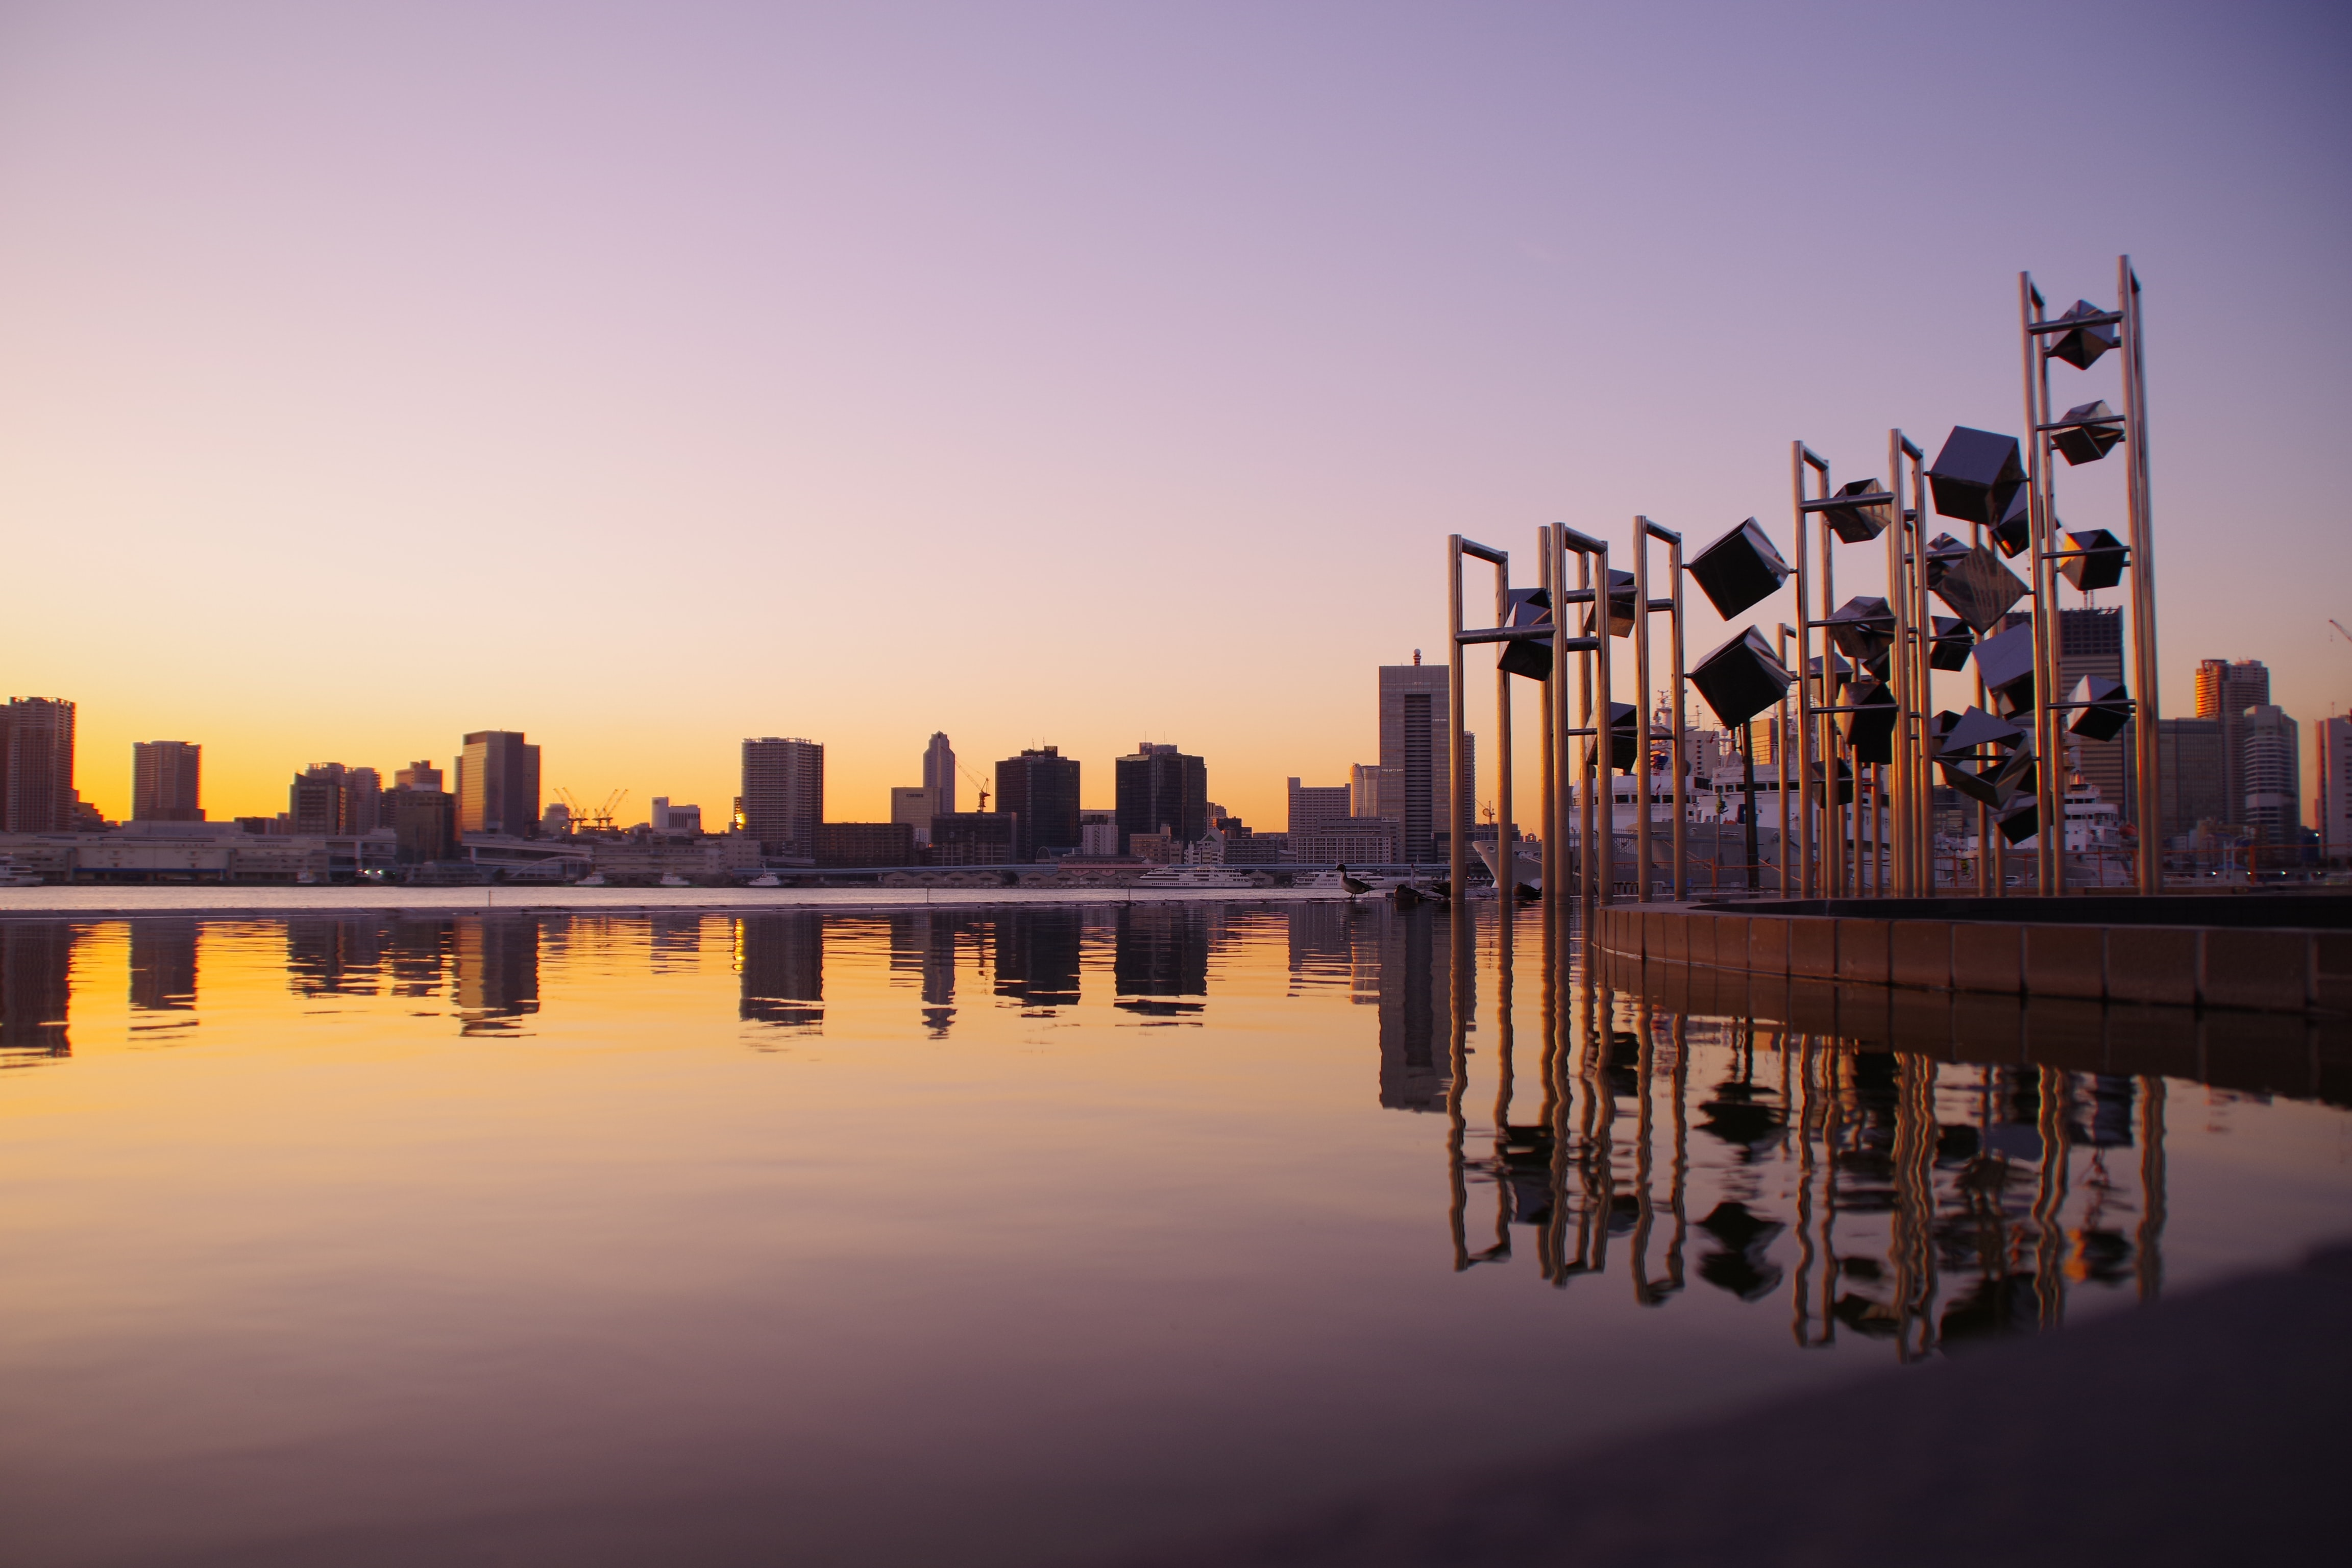 panoramic photography of buildings and towers reflecting on water during sunset